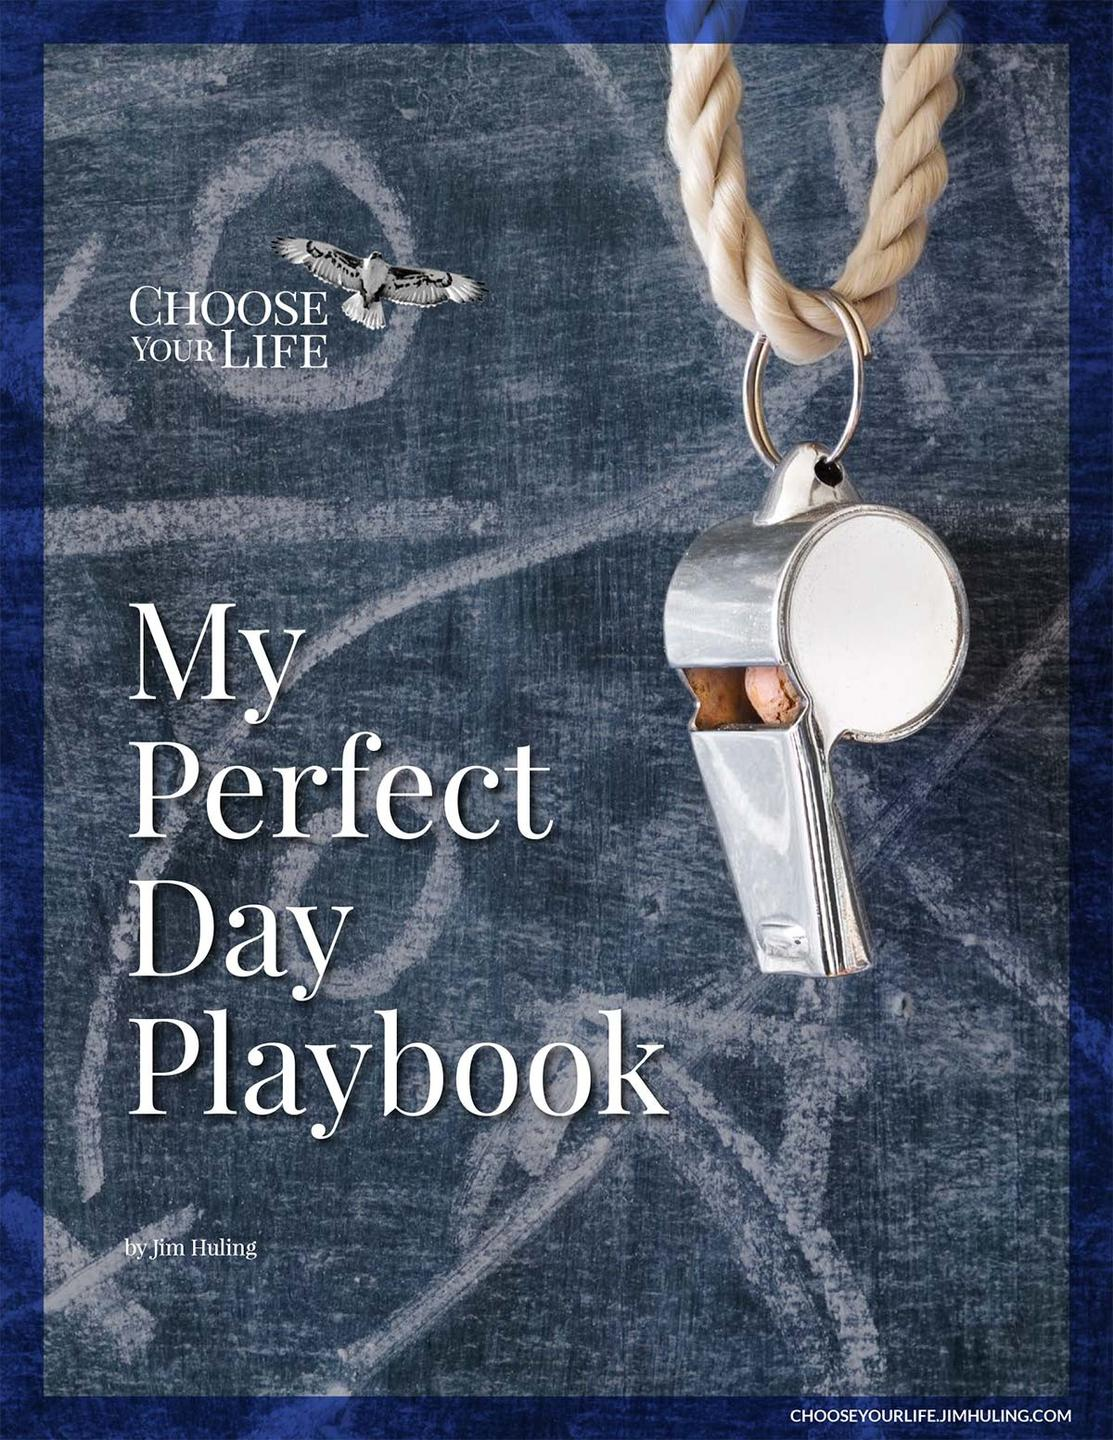 My Perfect Day Playbook